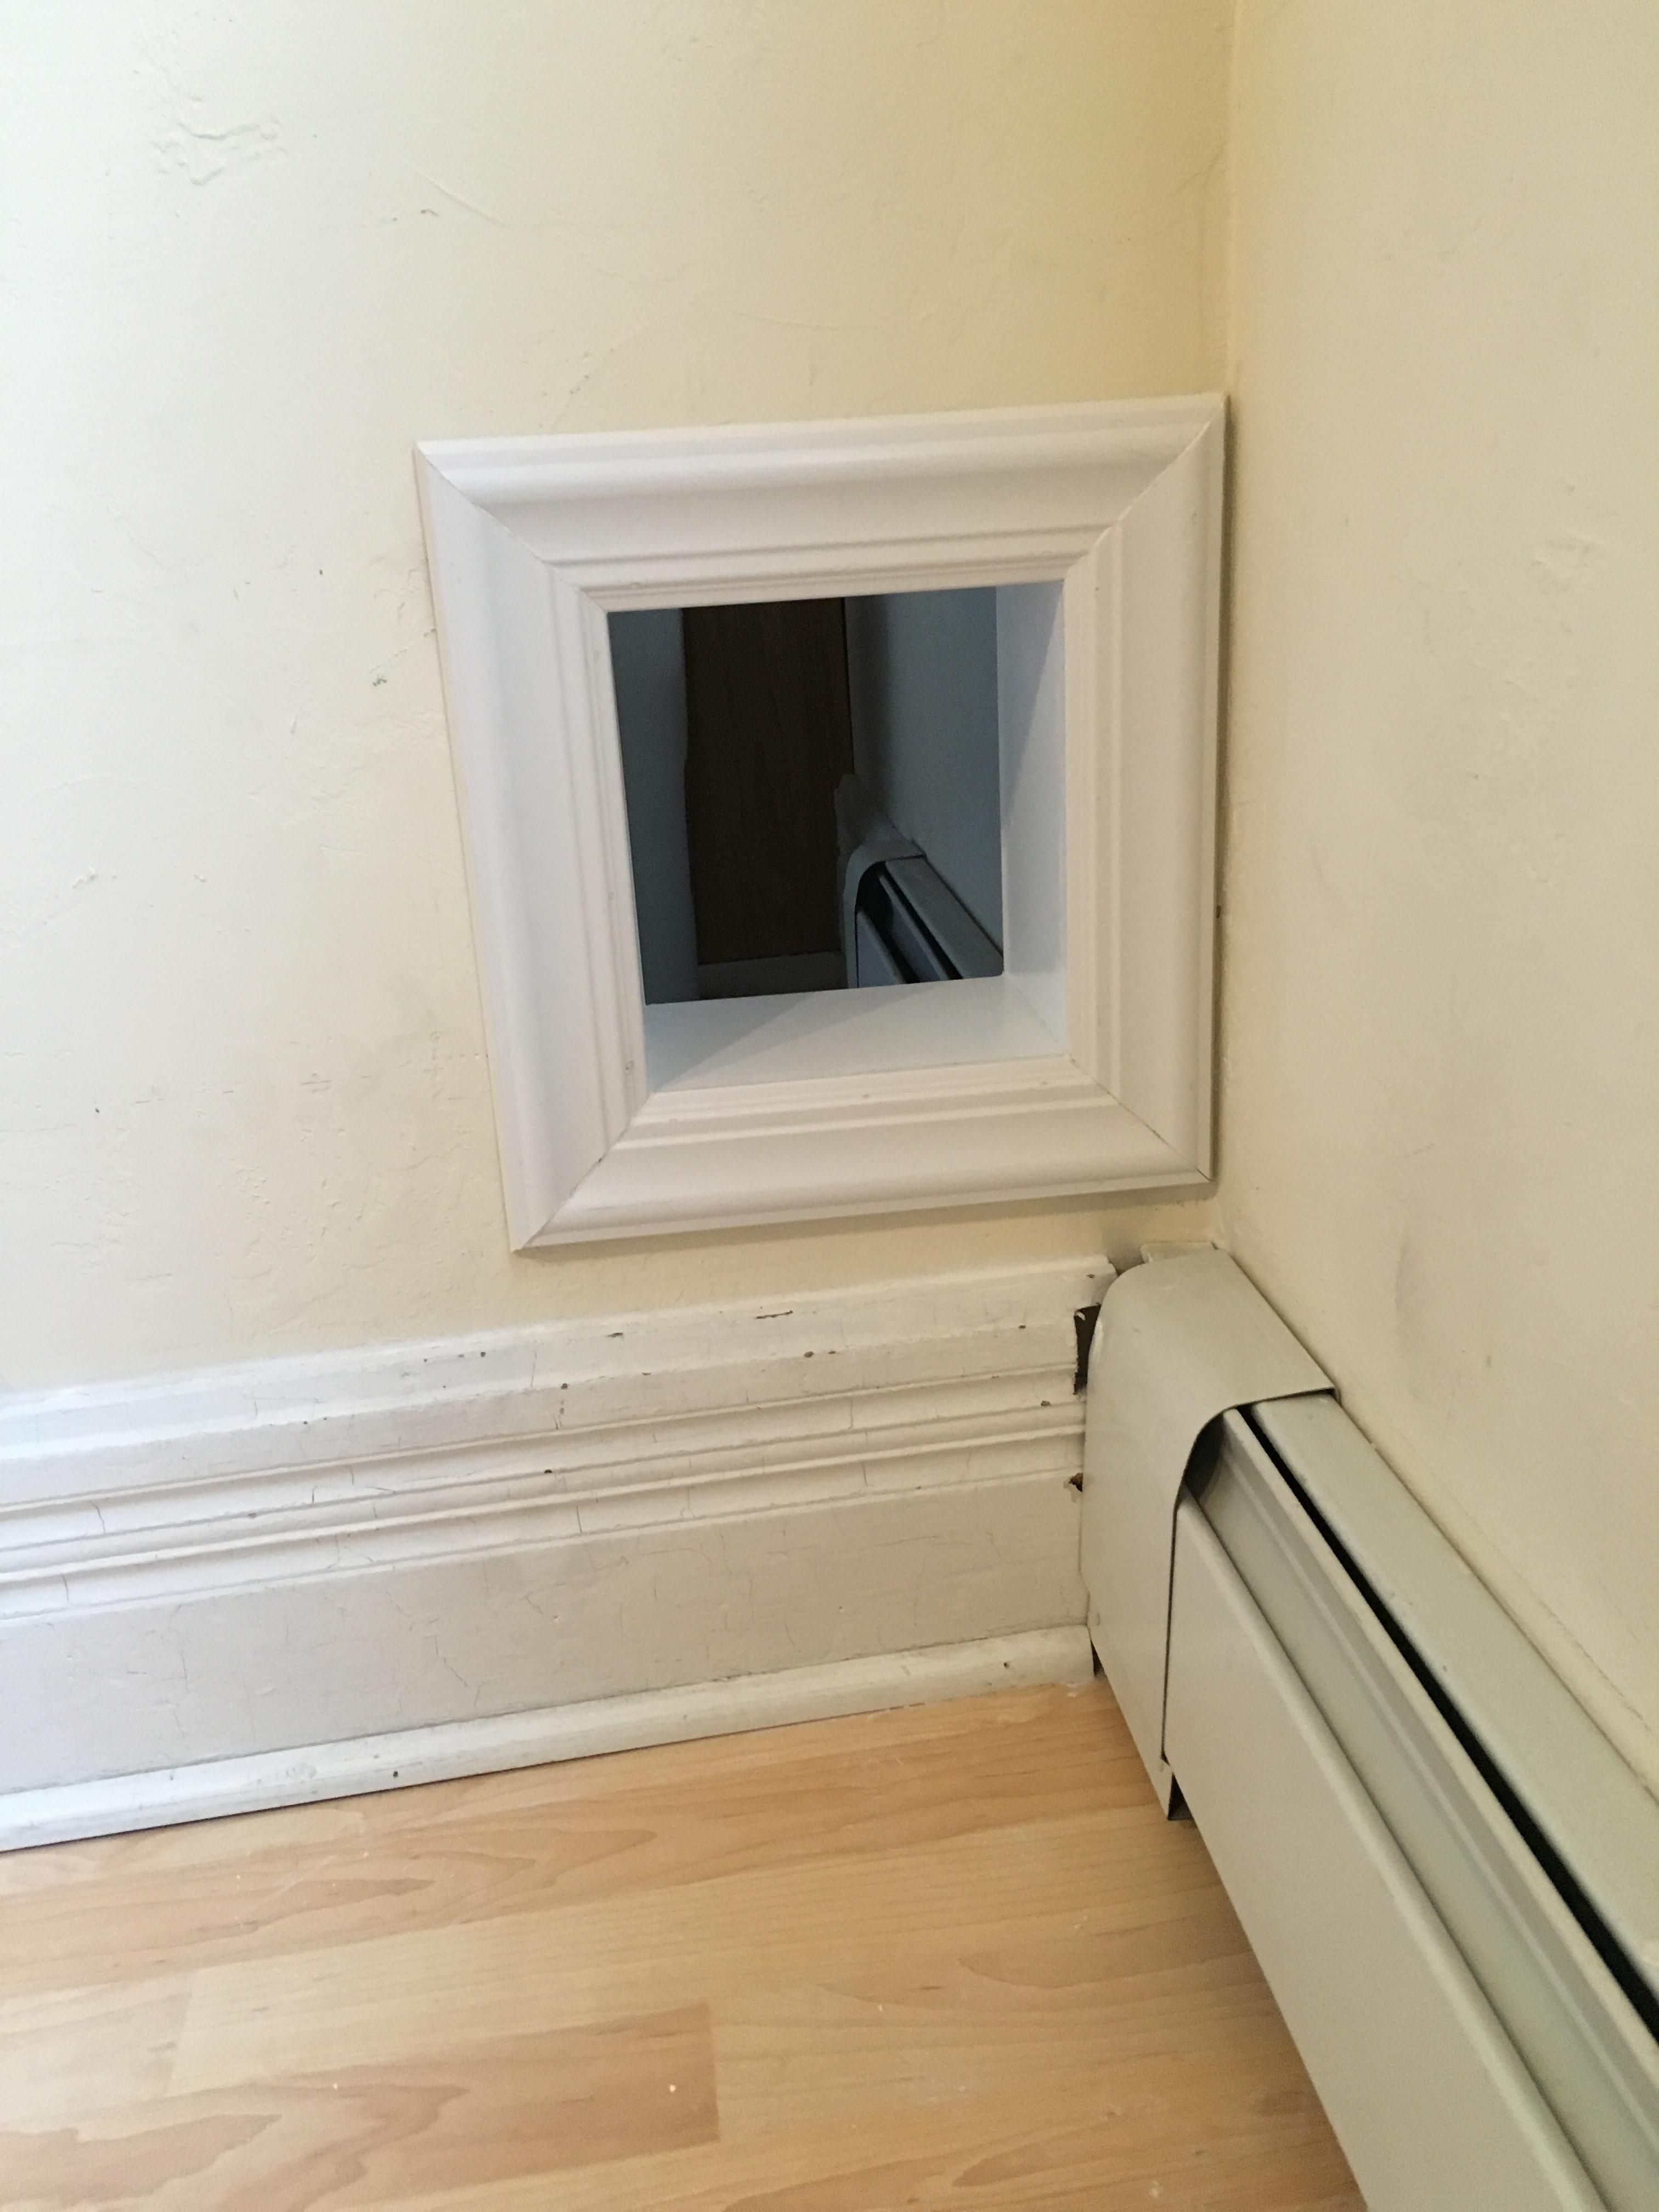 Made A Cat Door Tunnel Thing In My Wall Because Doors Are Ugly More